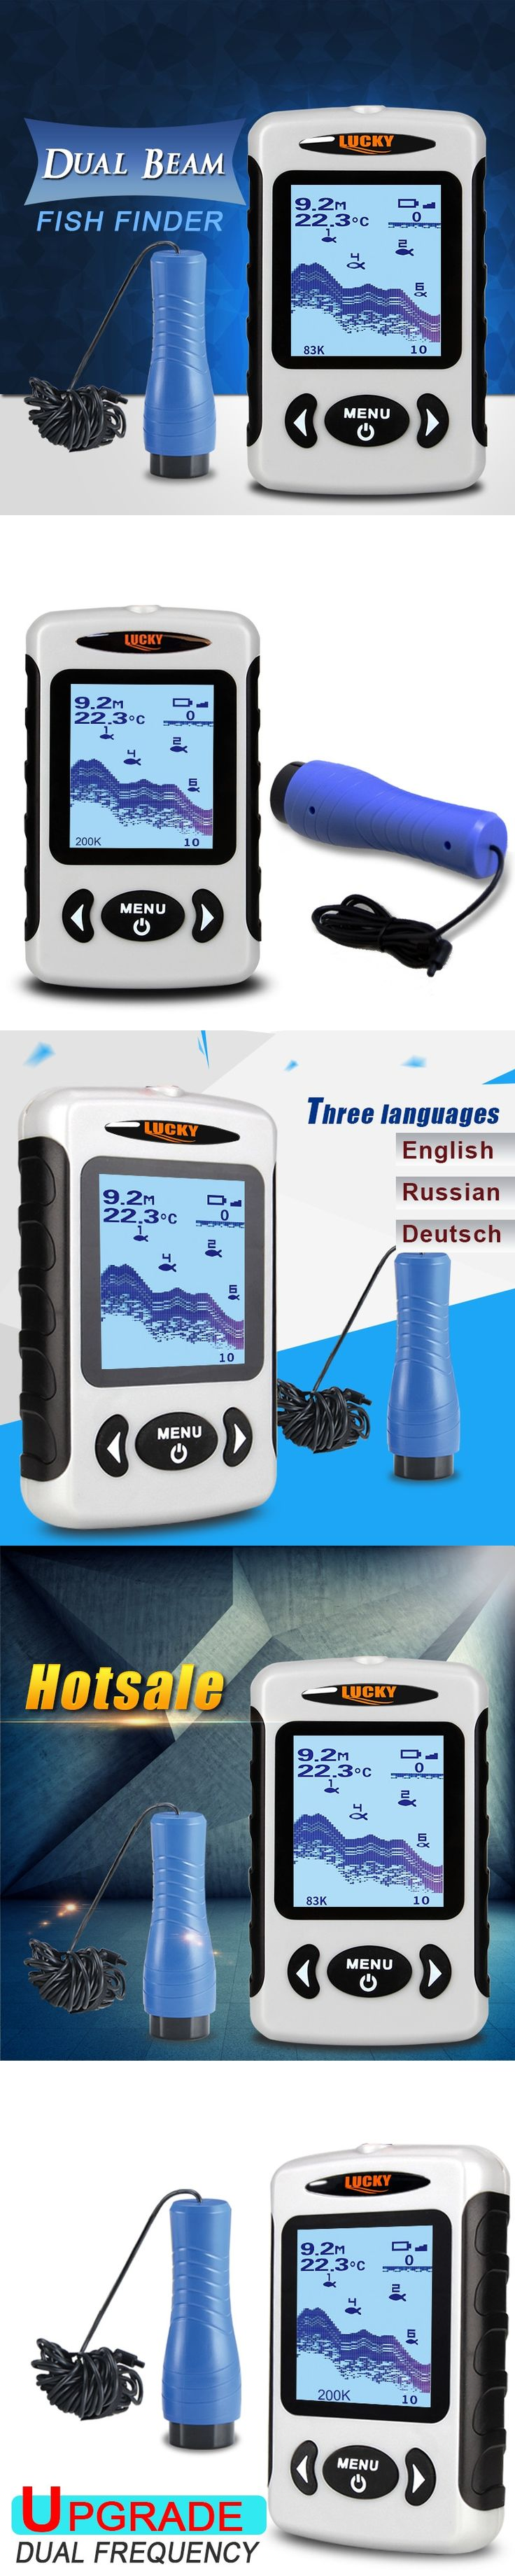 """LUCKY FF718D-Ice Portable Fish Finder 2.2"""" LCD Screen 200KHz/83KHz Dual Sonar Frequency 100M Fish Detector for Ice Fishing B2"""